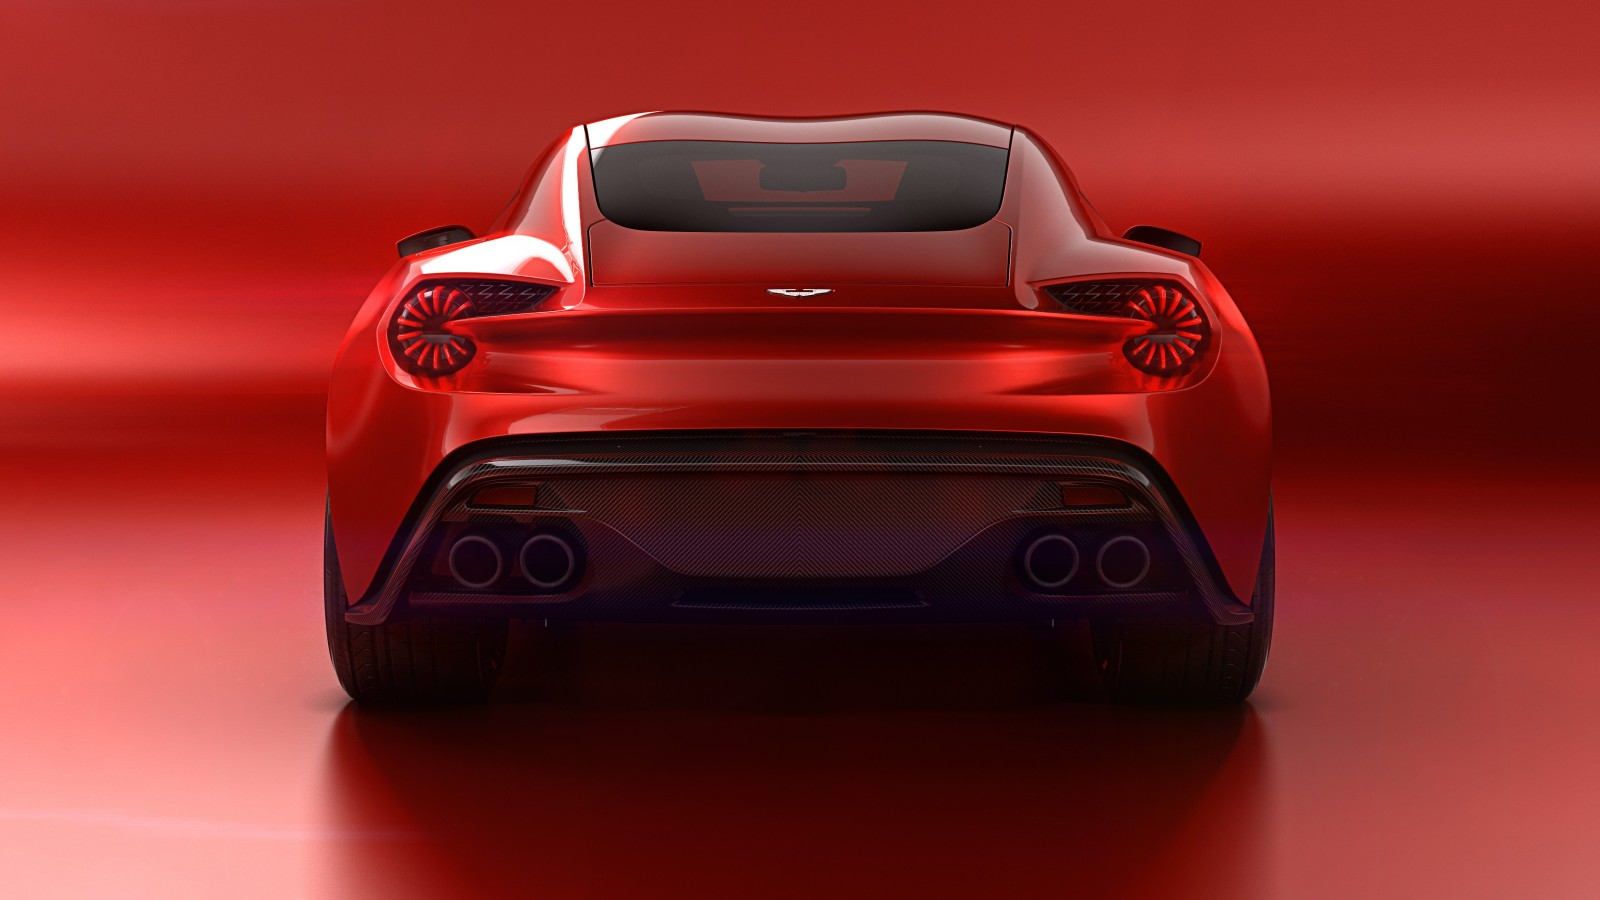 Aston Martin Vanquish Zagato Concept Unveiled Official Details And Images on aston martin v12 zagato